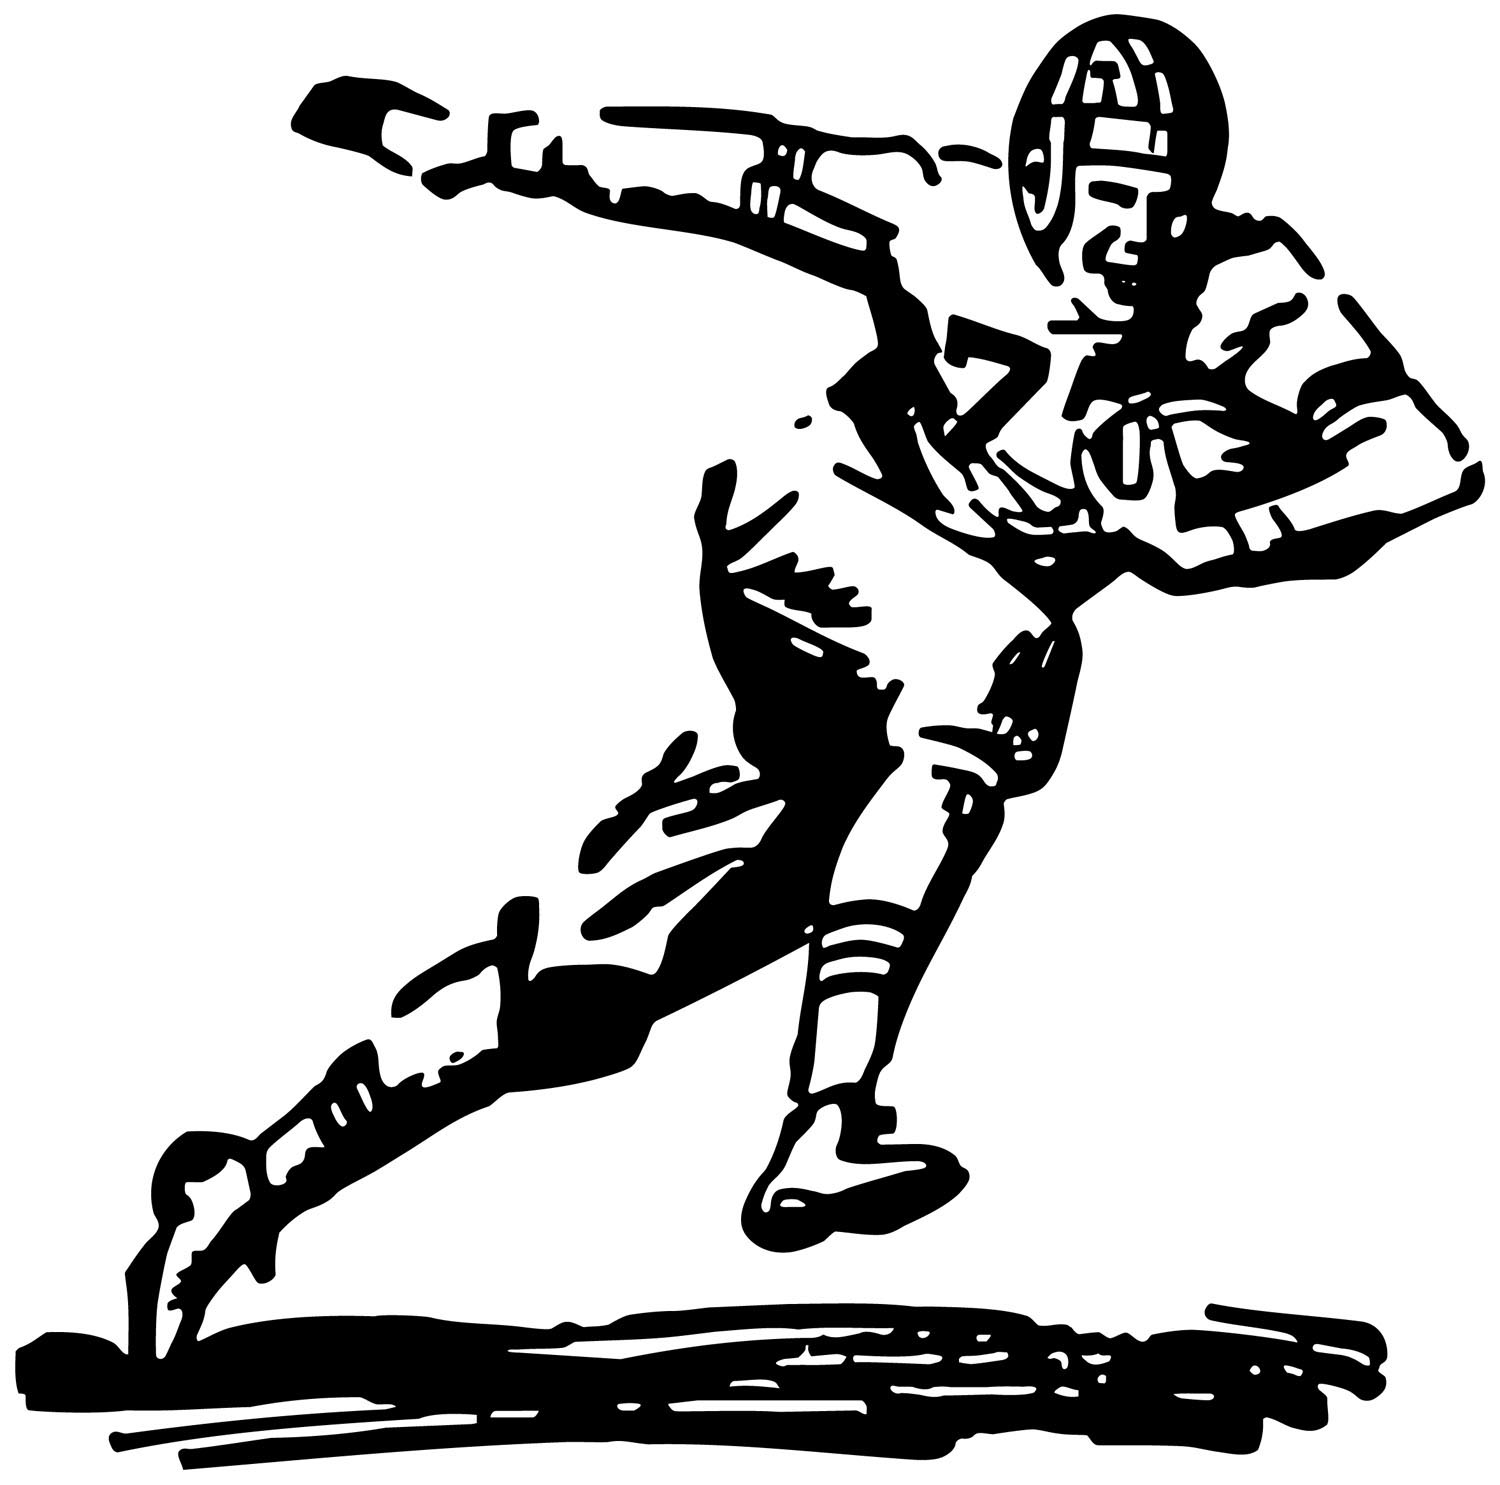 Nfl Football Player Throw Clipart Panda